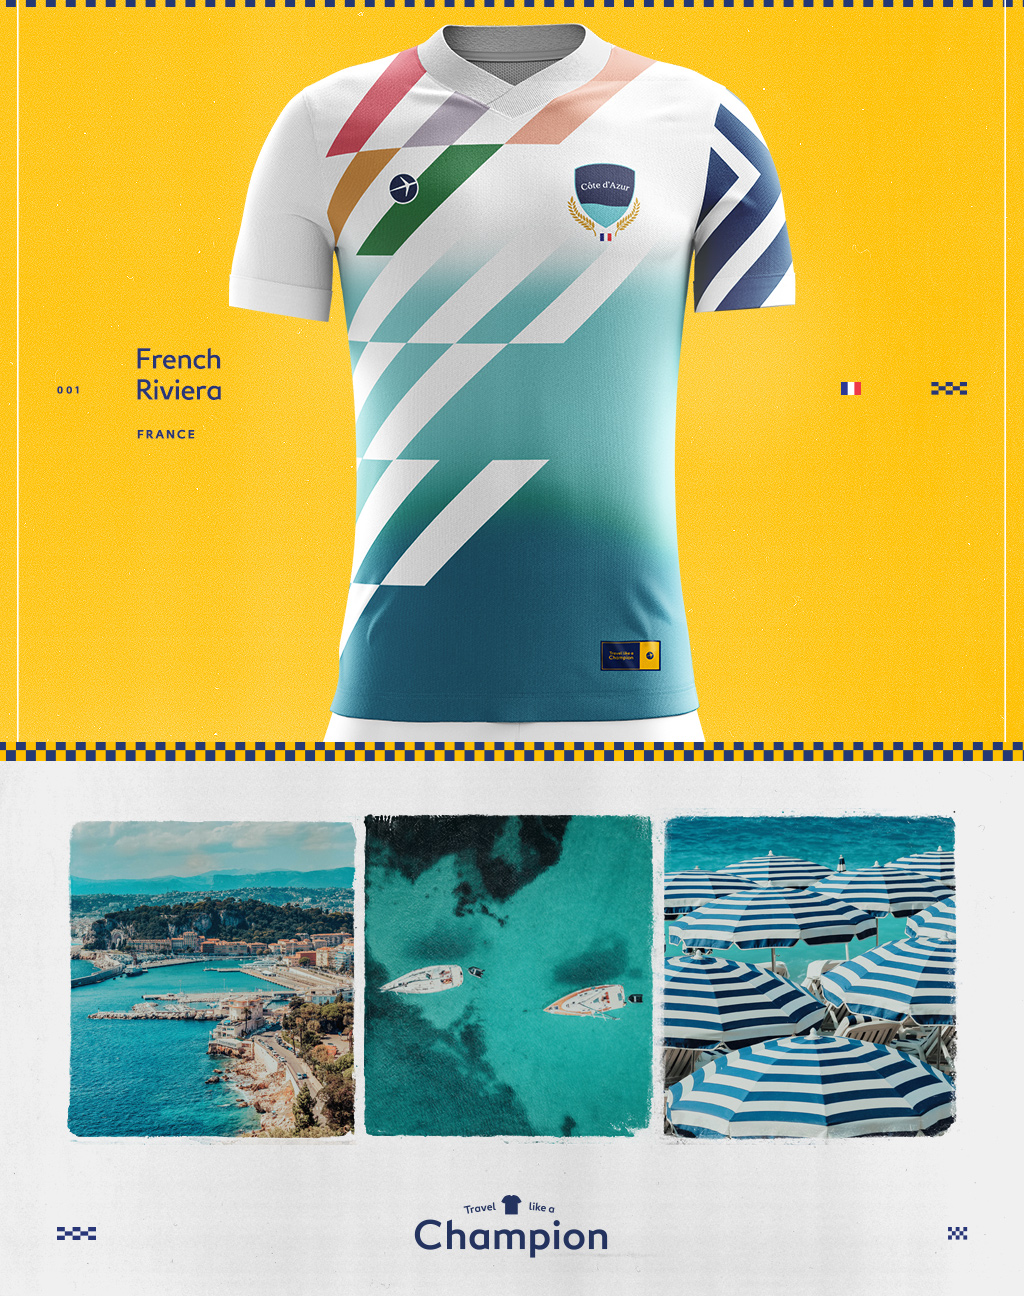 soccer jersey design inspired by pictures of the cote d'azur